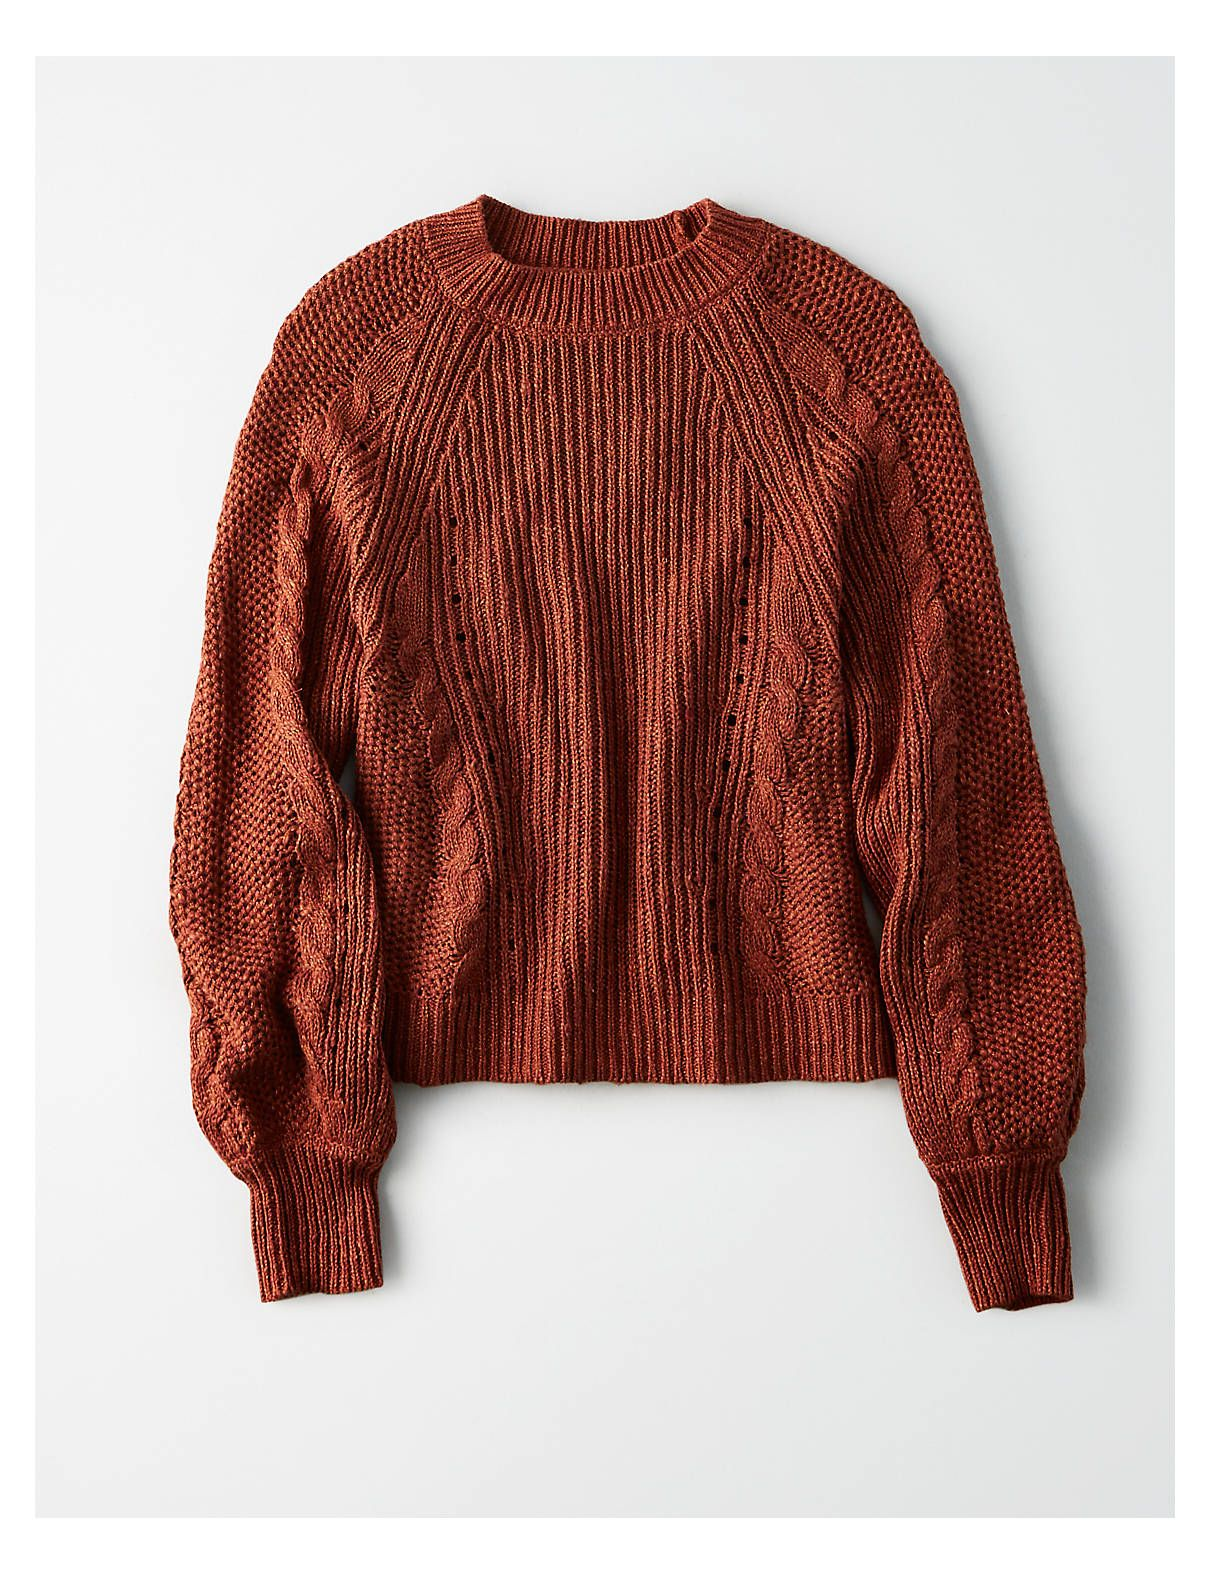 f63b06fe64b AE Chunky Cable Knit Crew Neck Sweater, Rust | American Eagle ...